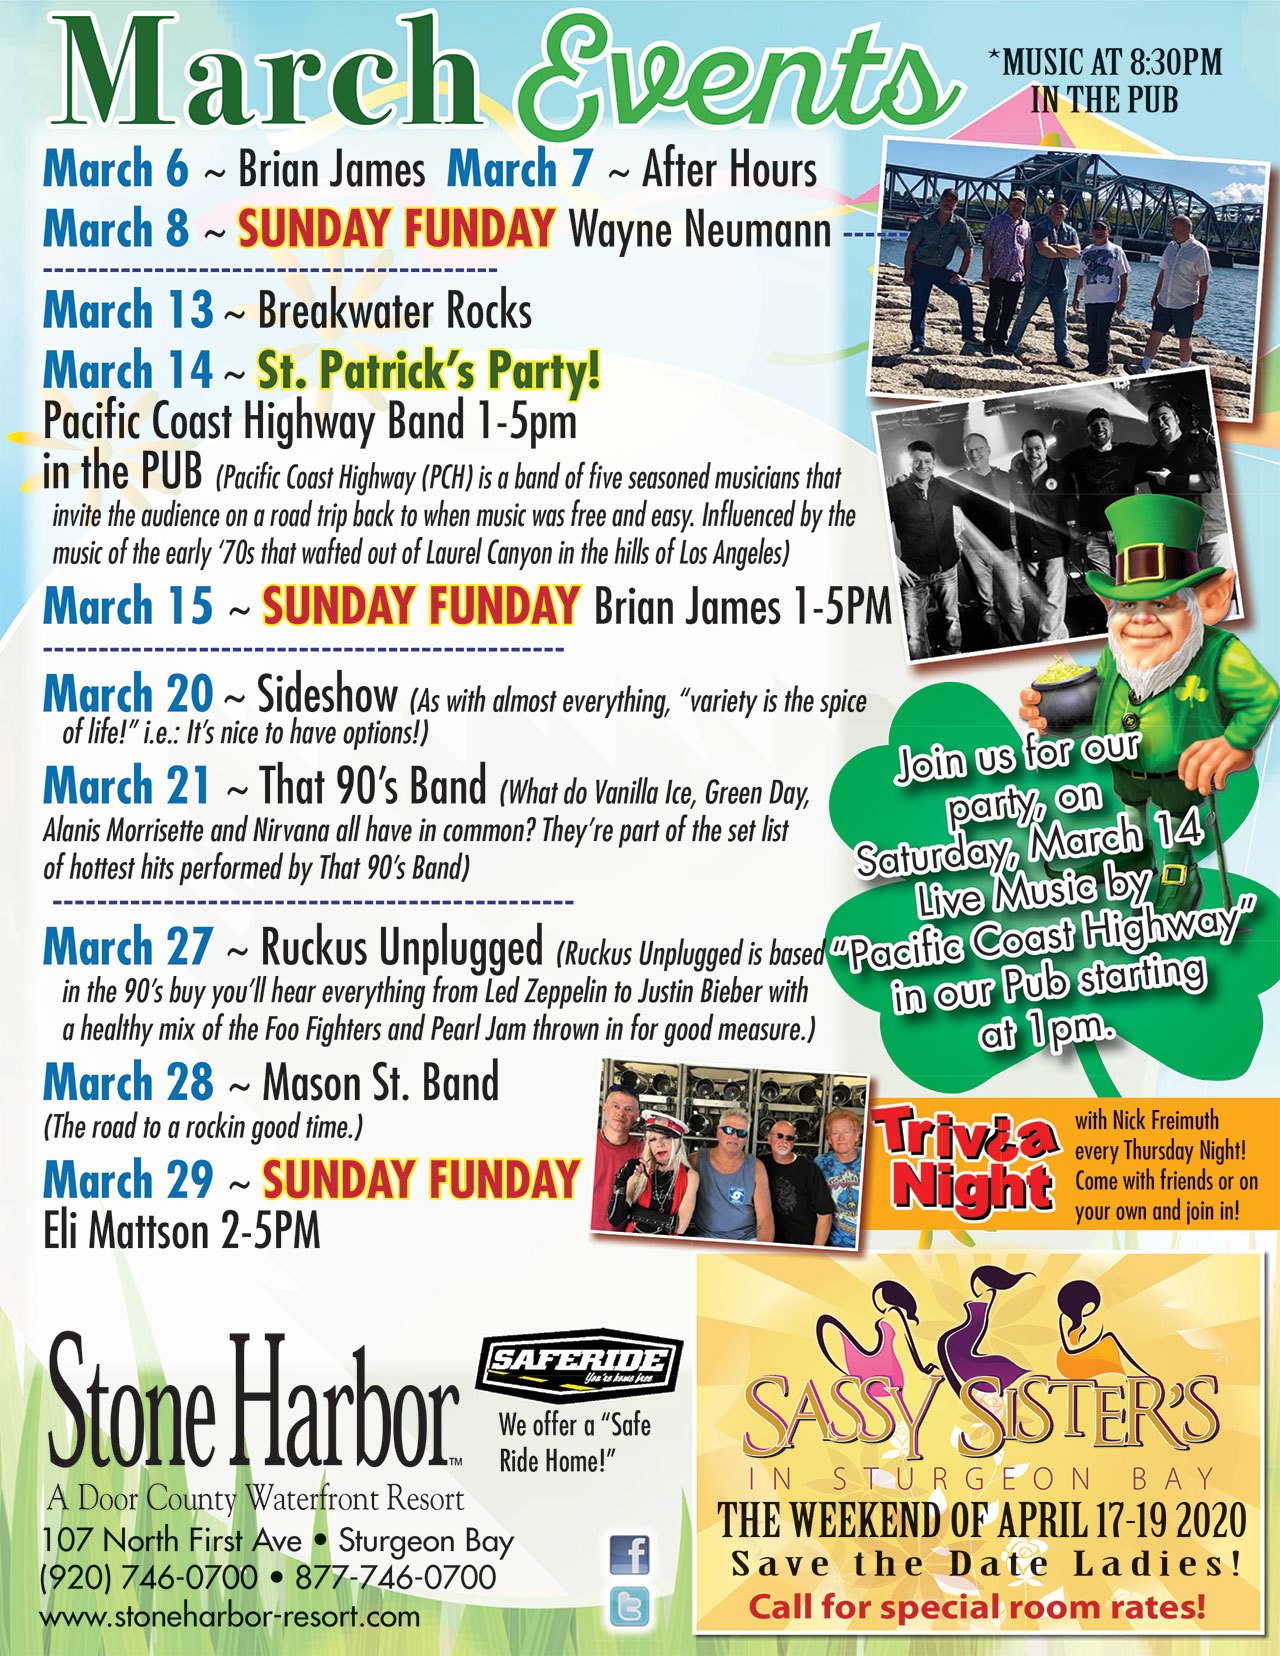 march events,things to do in door county,lodging near me,door county lodging,door county events